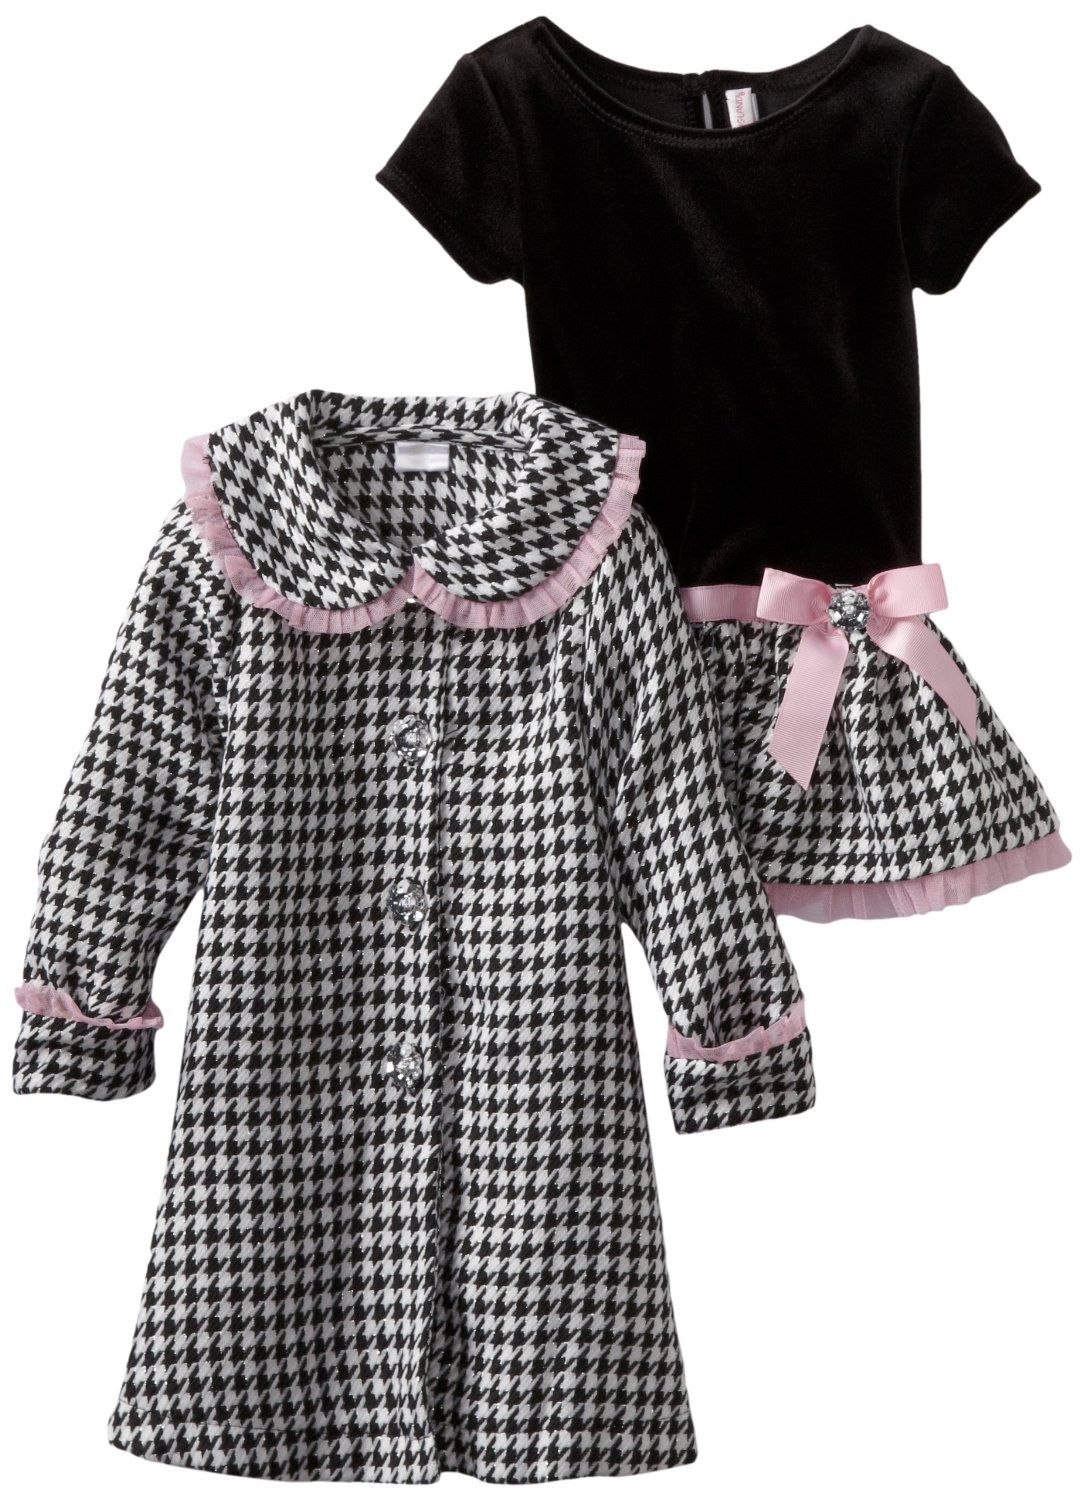 Youngland  Youngland Girls 2-6X Two Piece Plaid Lurex Coat Dress Set  Be the first to review this item  List Price: 	$52.00  Price: 	$26.00 -- http://www.amazon.com/Youngland-Girls-Piece-Plaid-Lurex/dp/B0085JD1SQ/?tag=weilos078-20